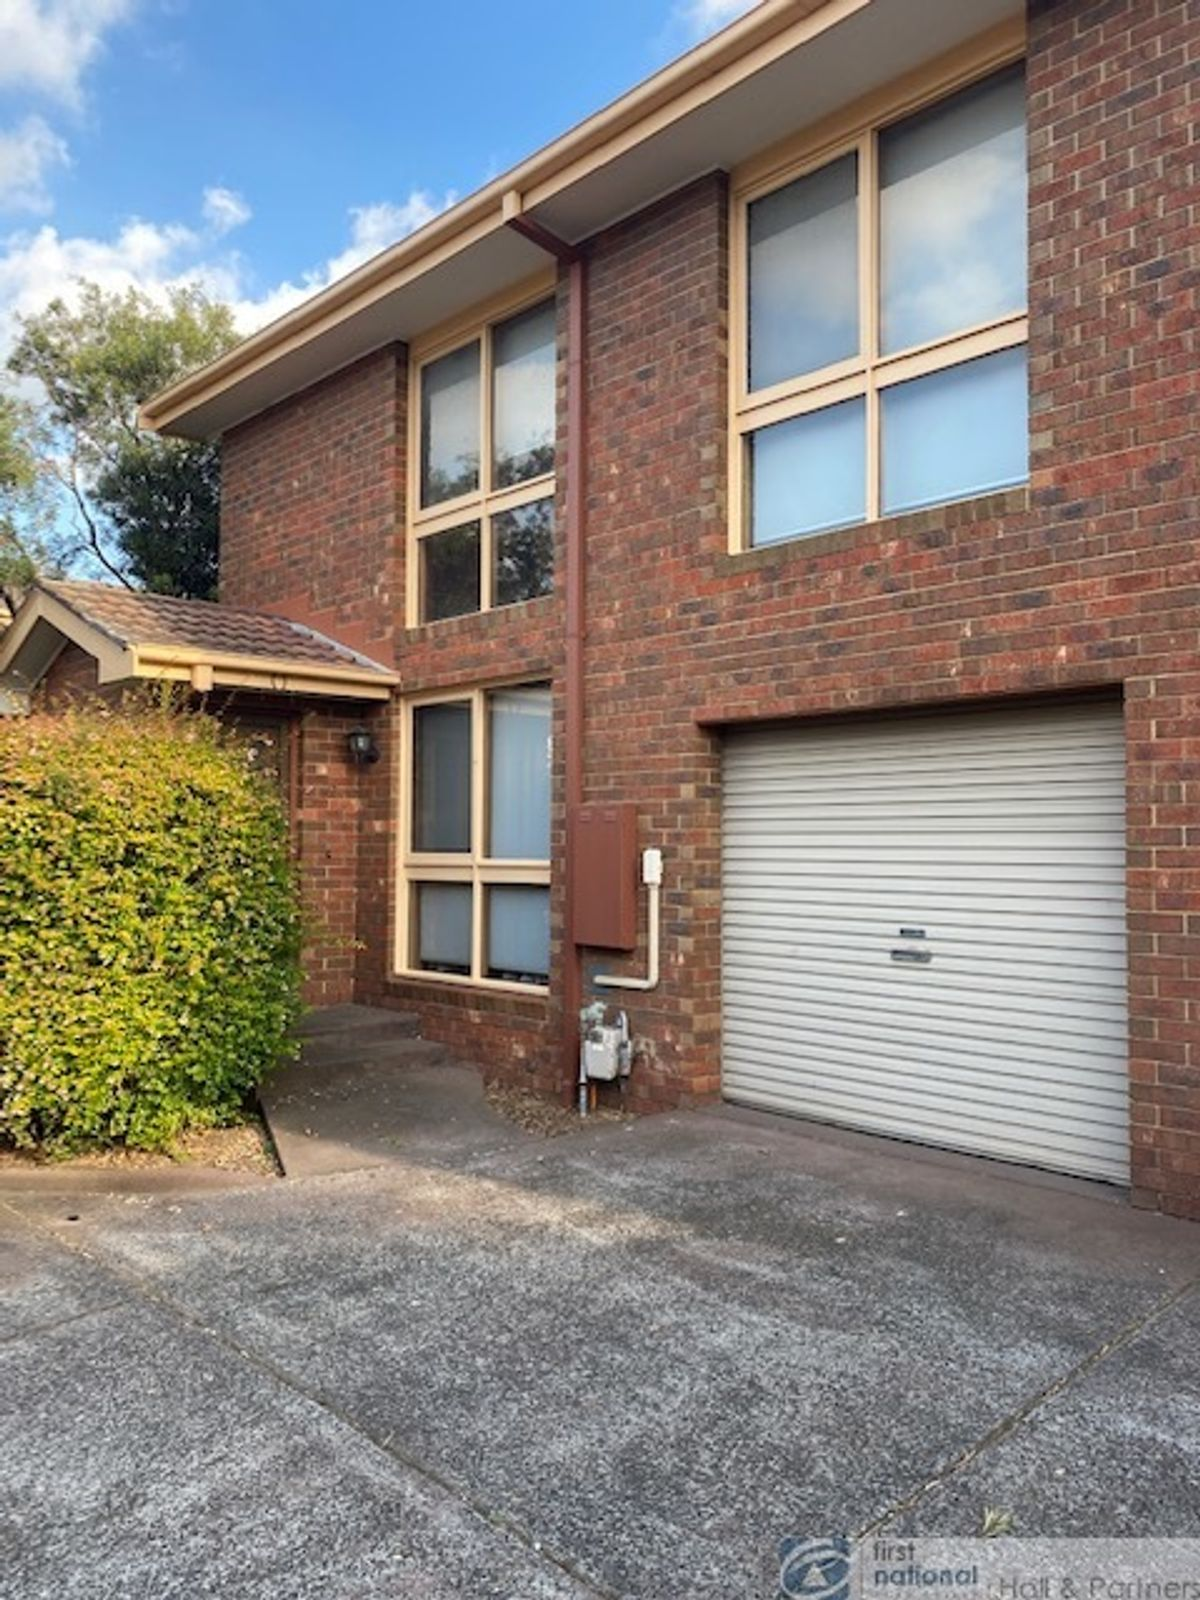 2/10 Day Street, Dandenong, VIC 3175